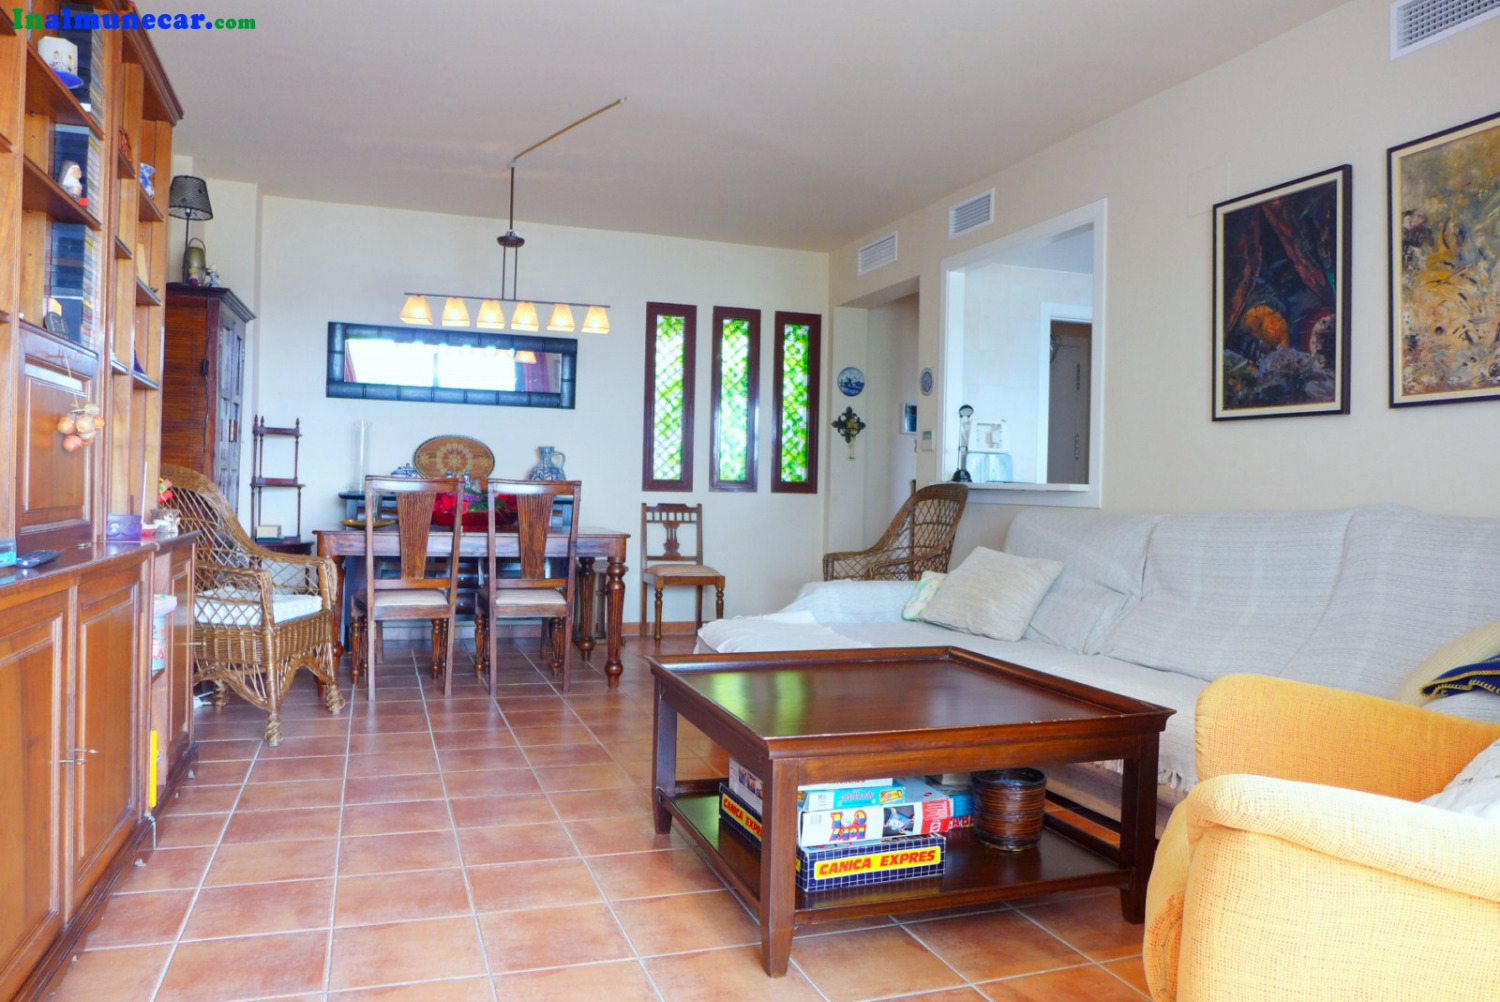 Apartment for sale in La Herradura-with Parking space and swimming pool